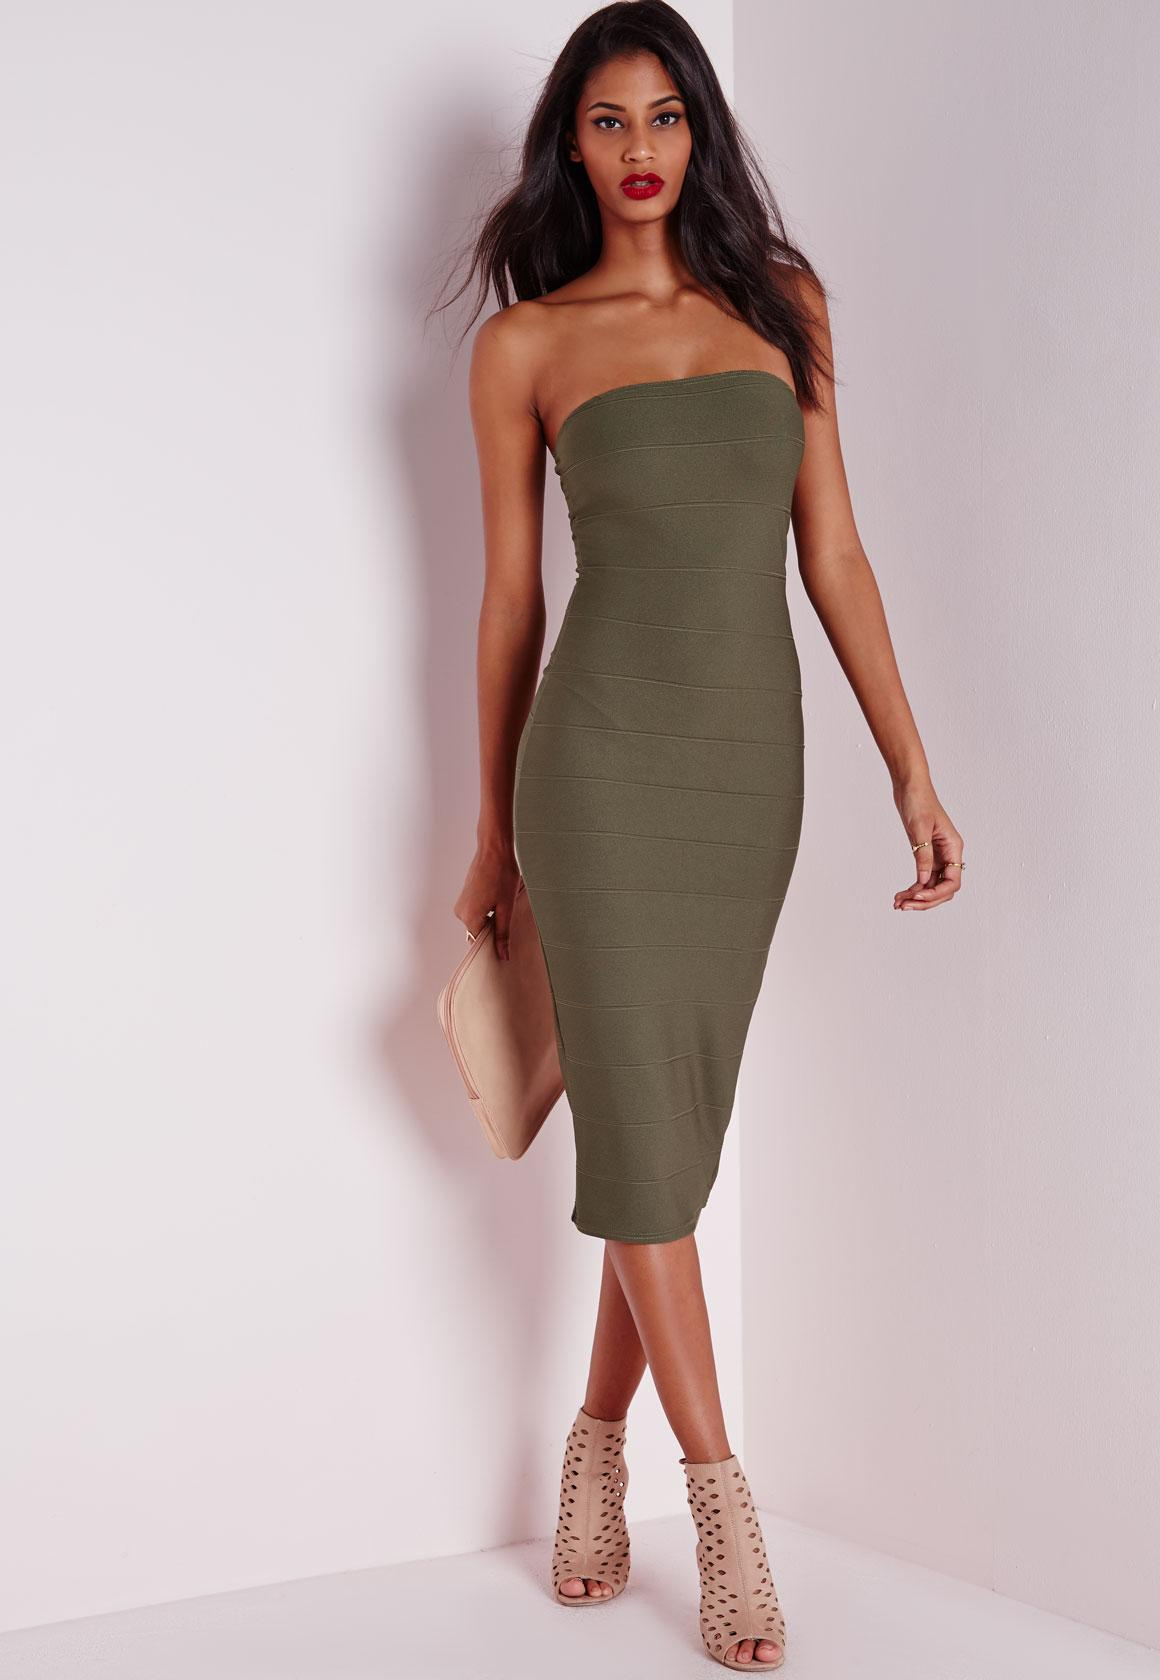 Bandeau & Strapless Dresses Online - Missguided